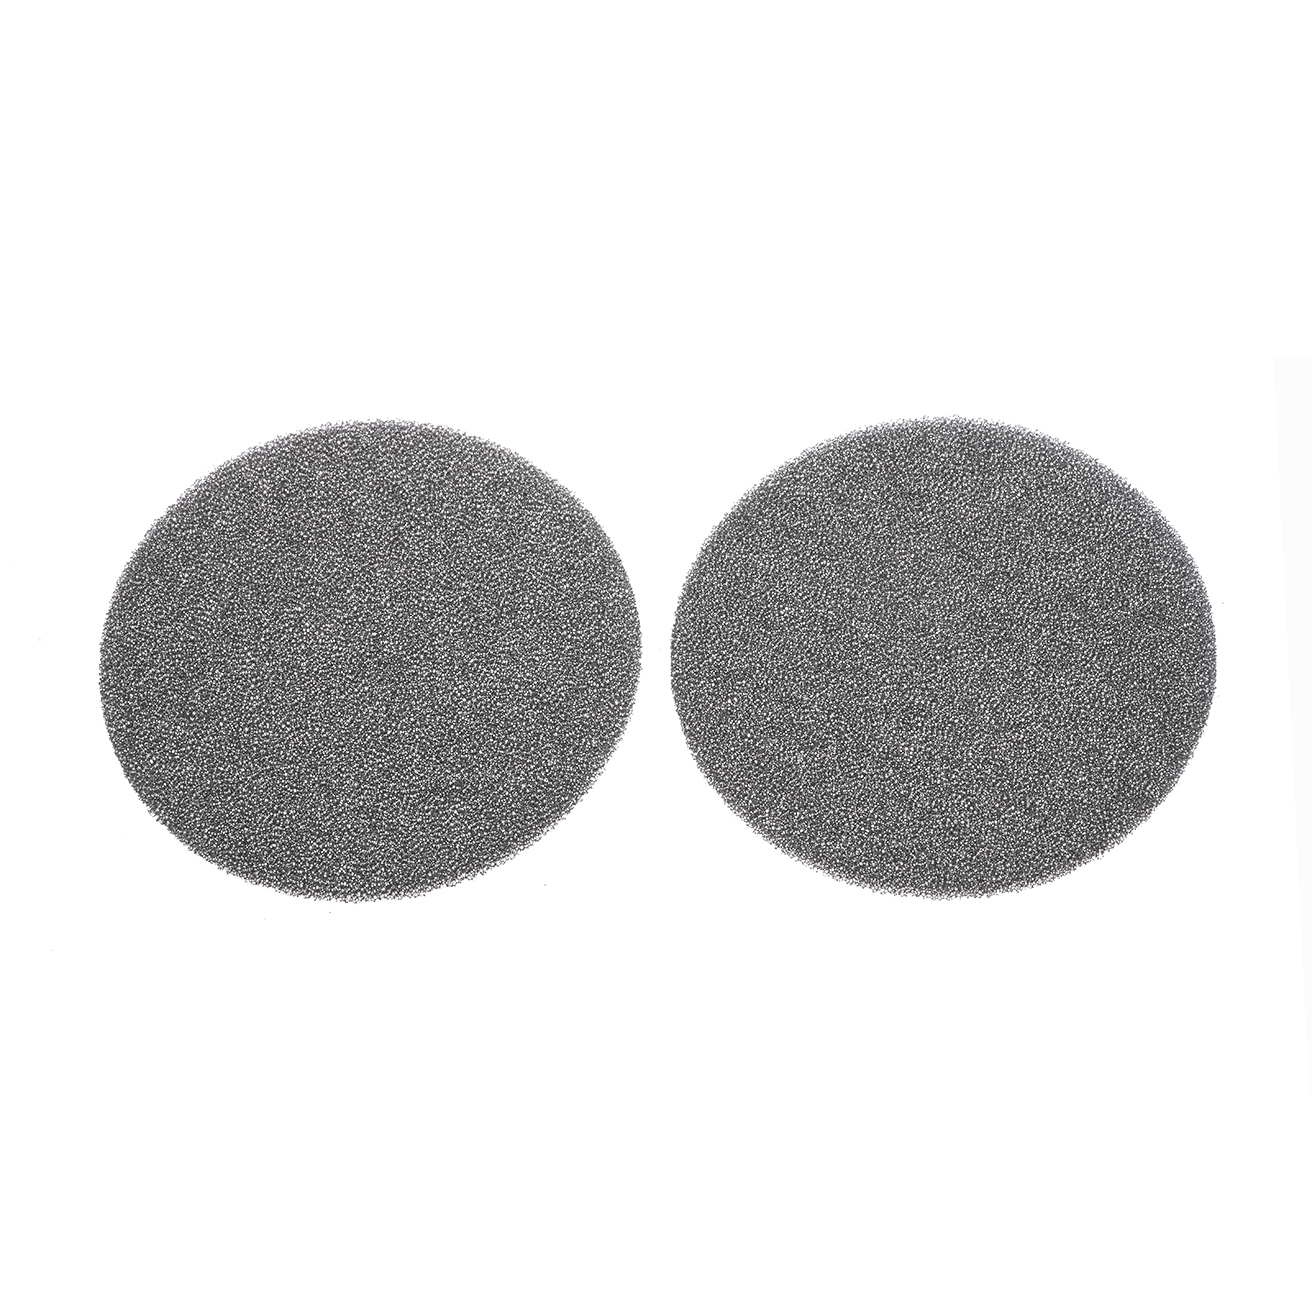 1 pair foam discs for ear pads